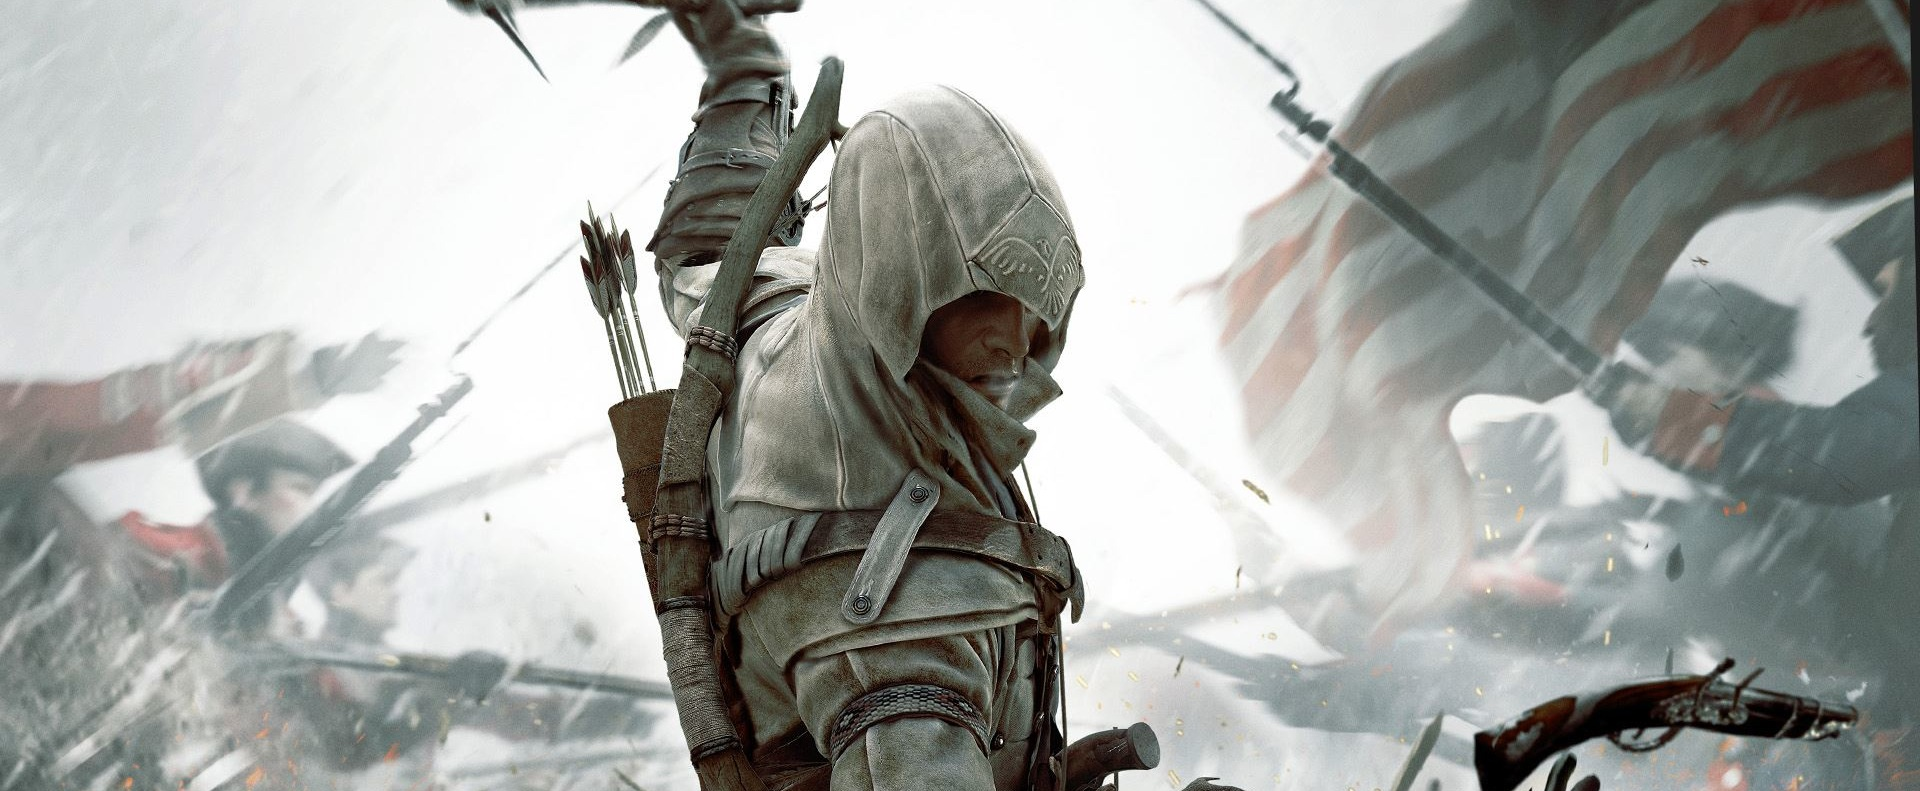 file_4060_Assassins-Creed-3-midnight-release1